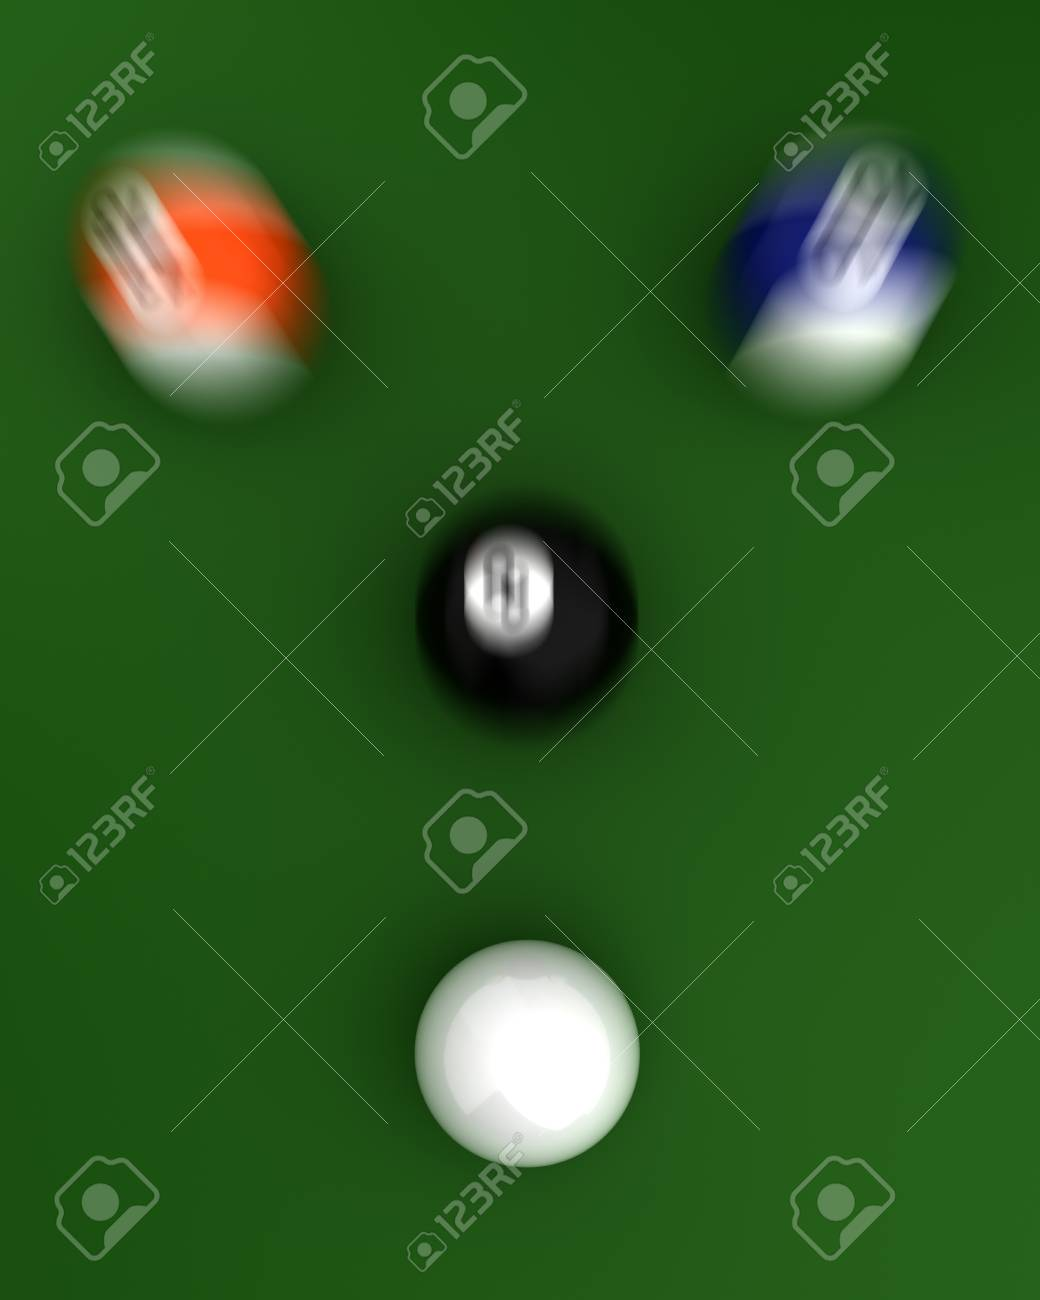 Shot to Billiard Balls  Computer generated image Stock Photo - 16239720